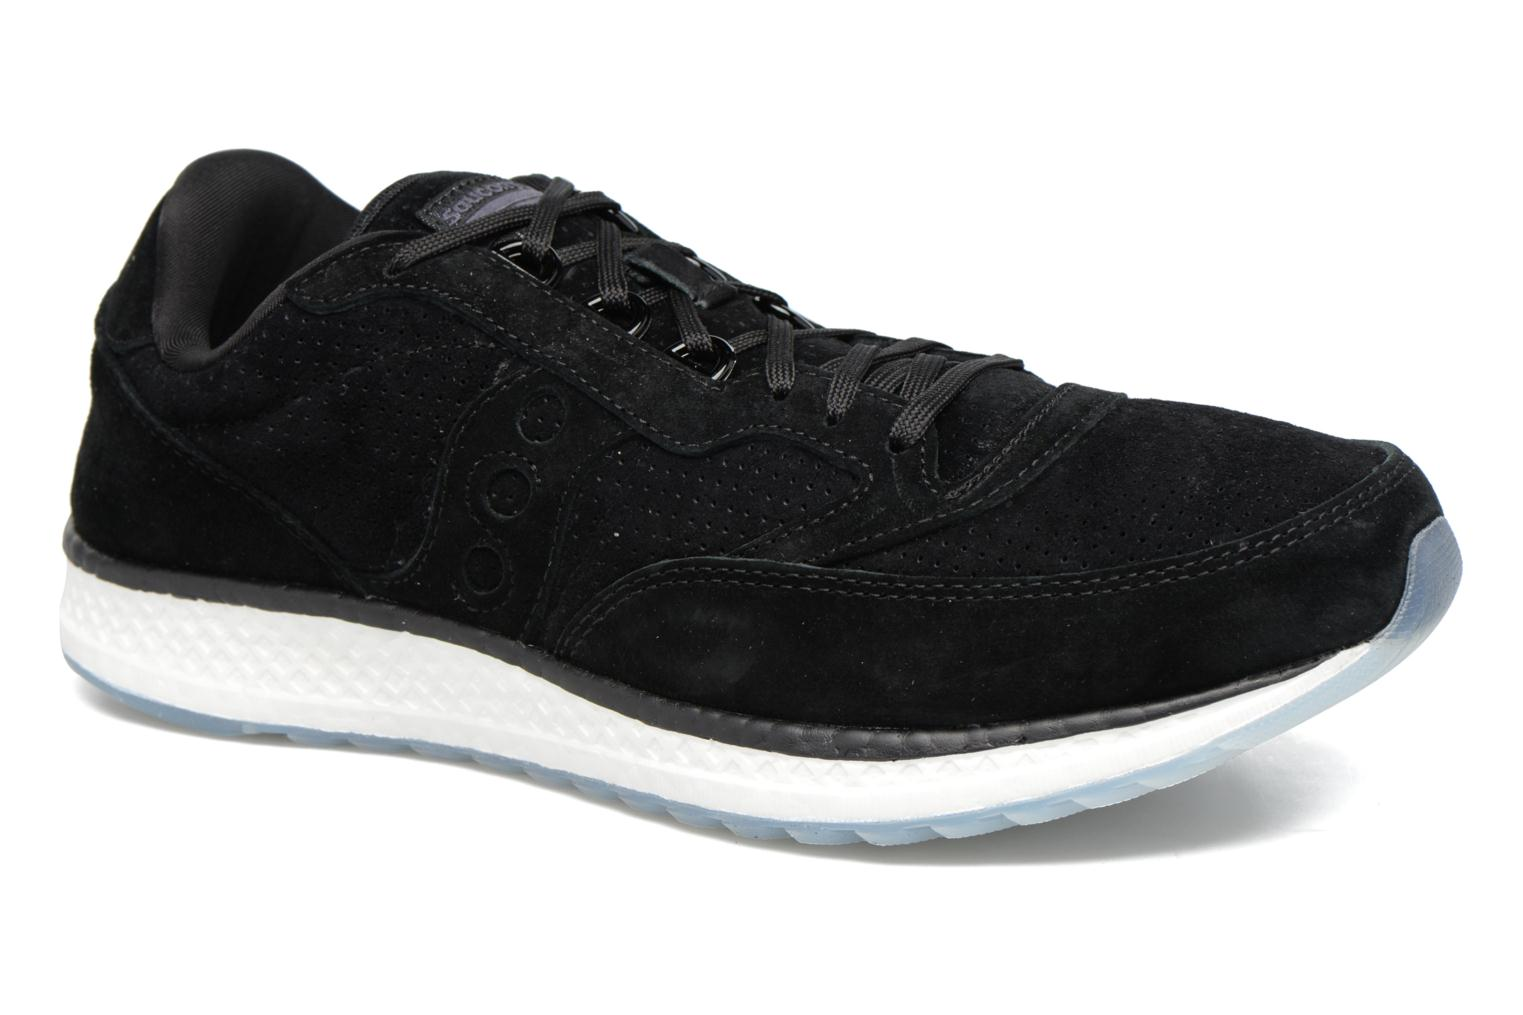 Freedom Runner by SauconyRebajas - 40%